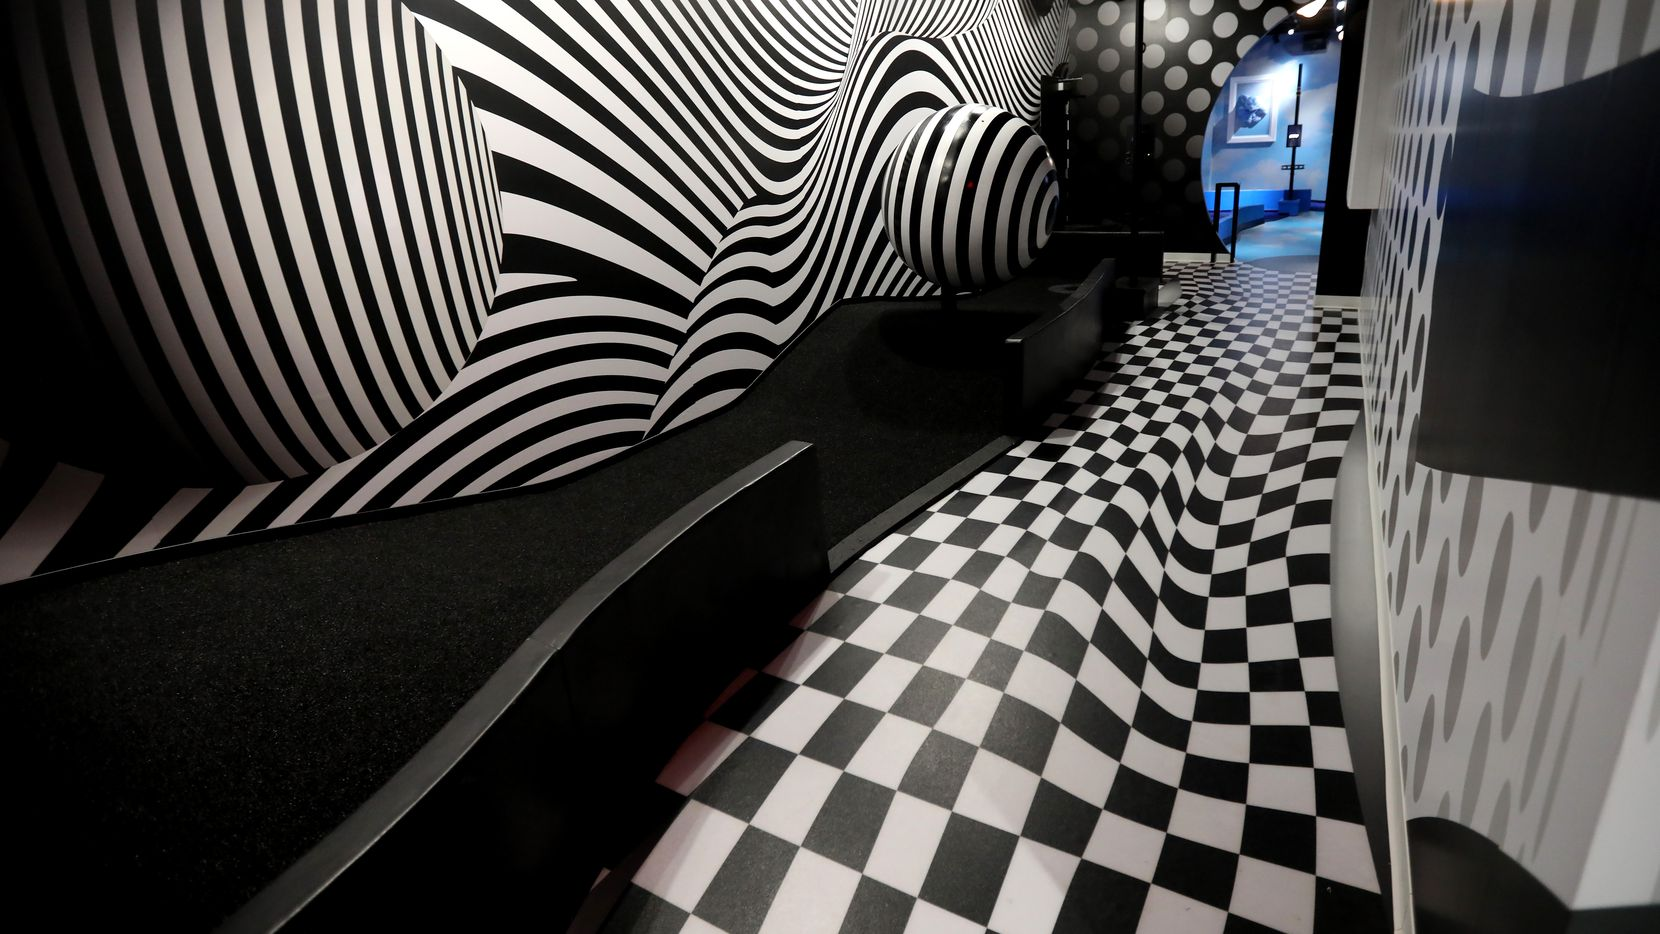 A hole in the Illusion room at Puttery, a new indoor mini golf and entertainment concept in The Colony, Texas, Monday, August 30, 2021. (Anja Schlein/Special Contributor)